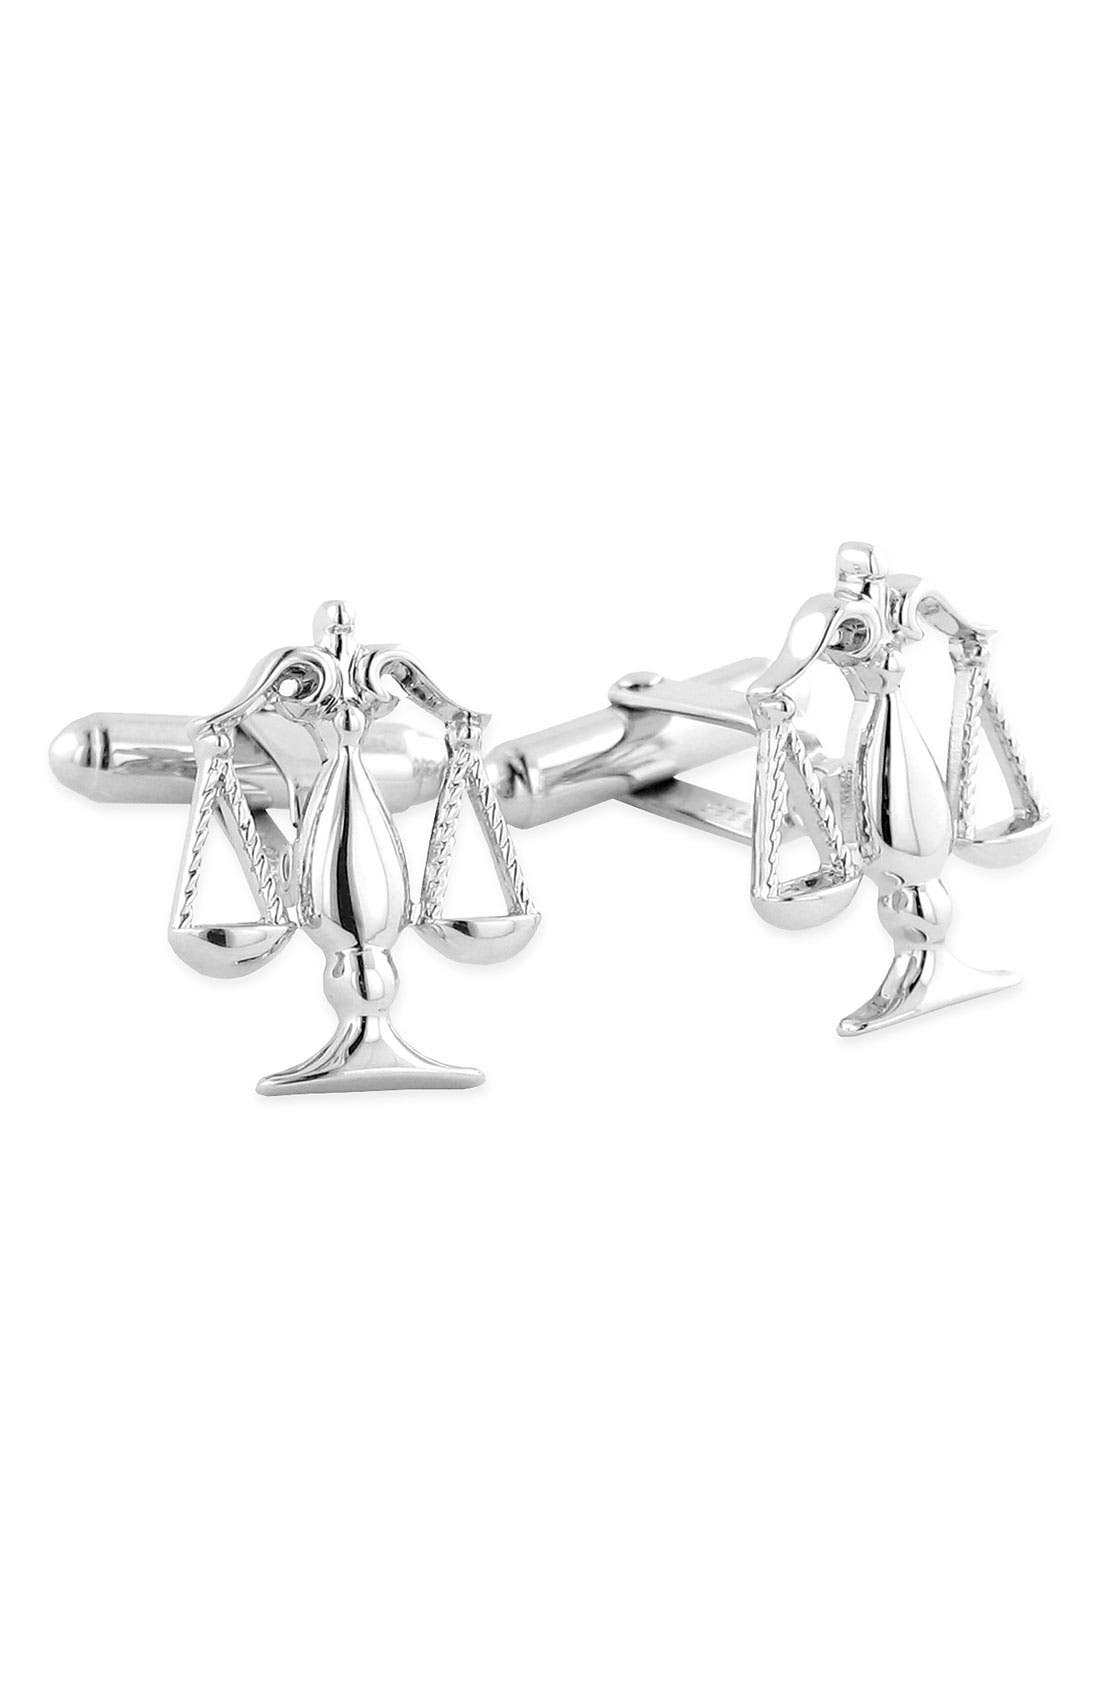 DAVID DONAHUE Scales of Justice Cuff Links